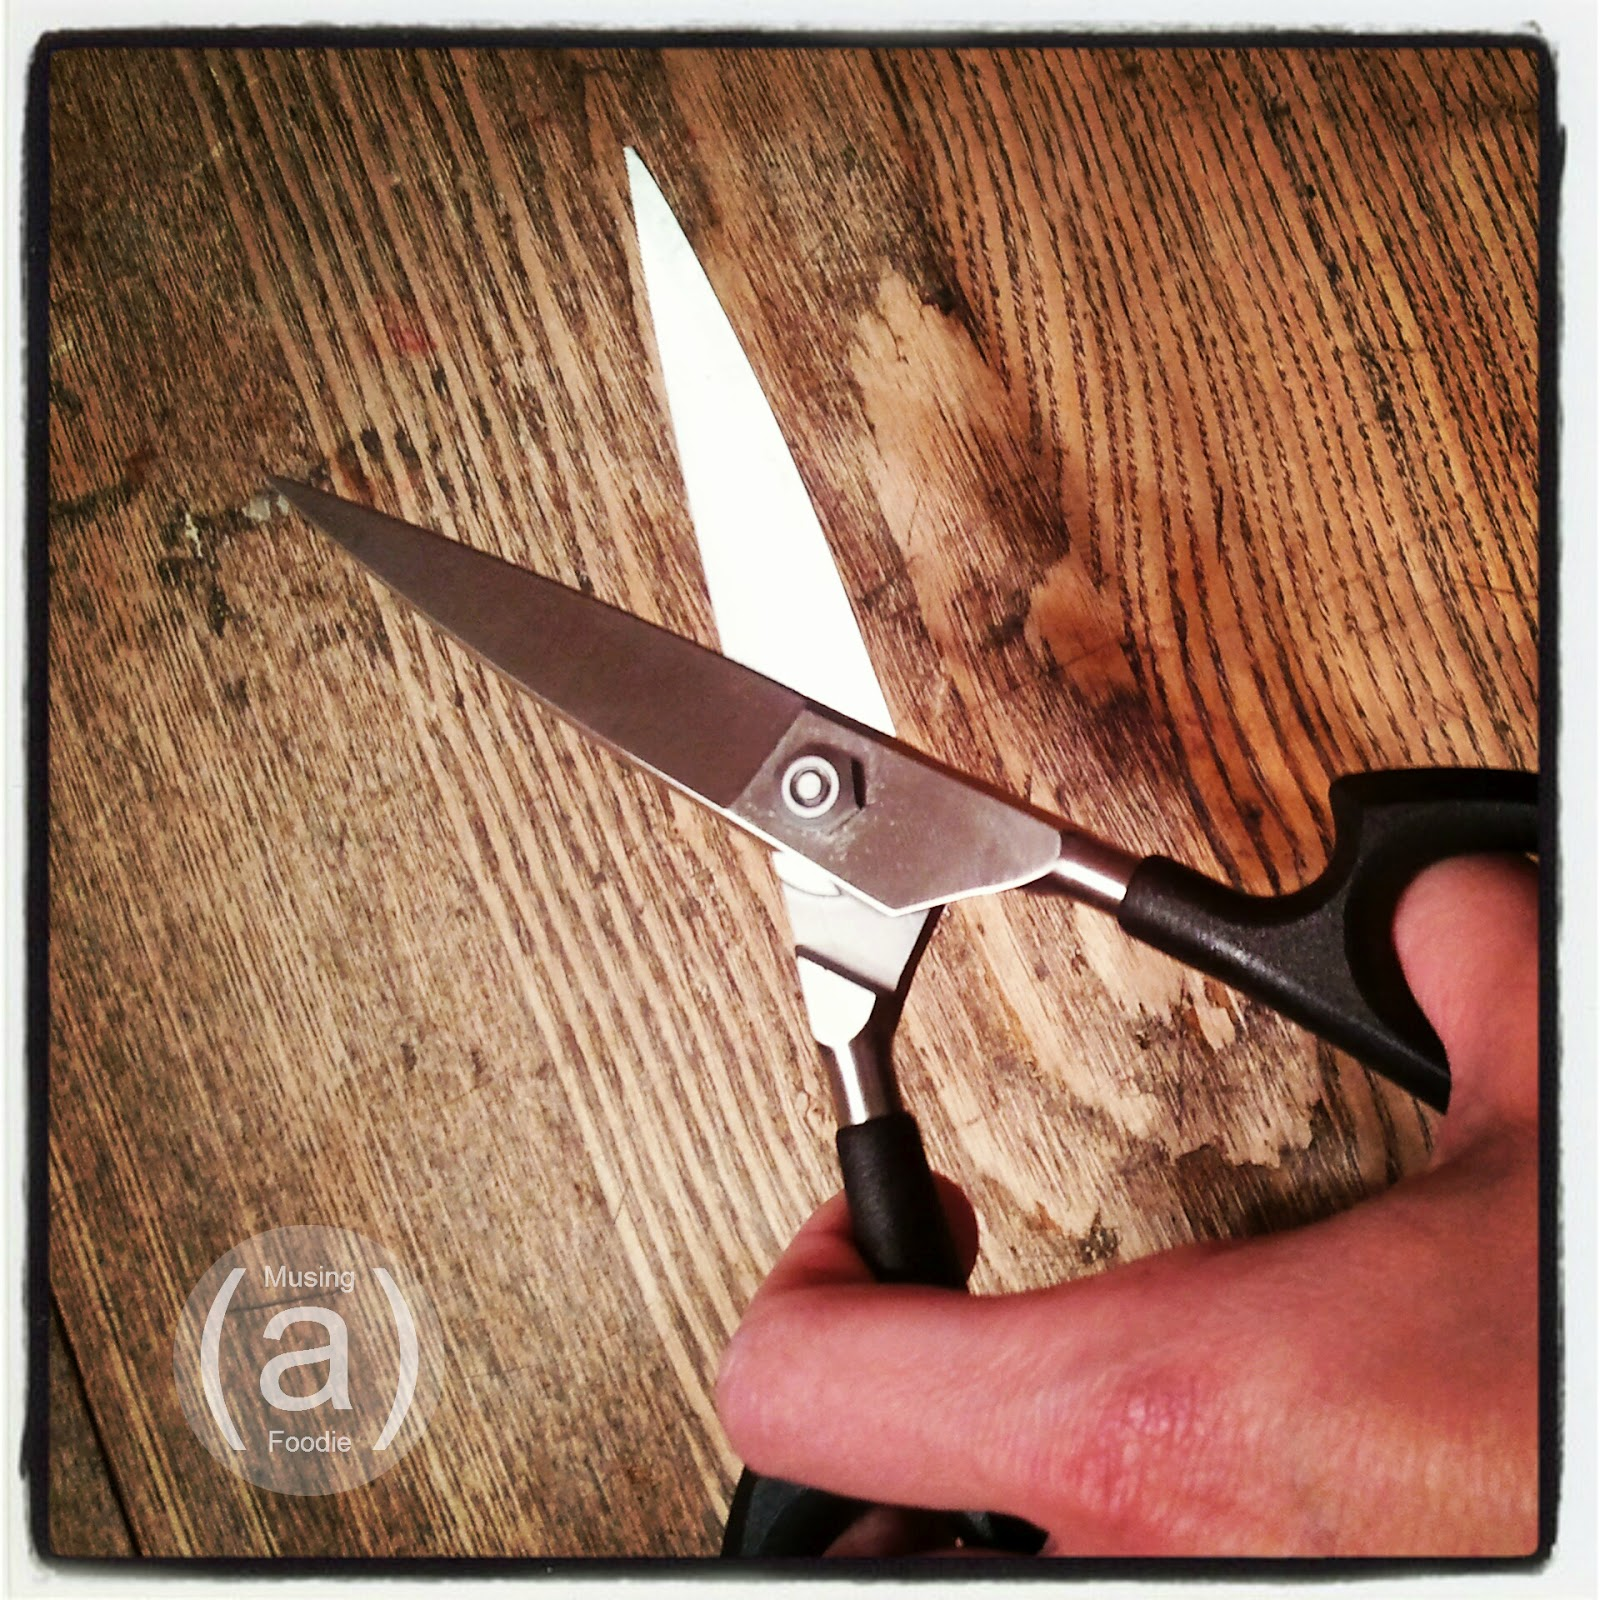 2 great uses for kitchen shears + @cutcocutlery giveaway